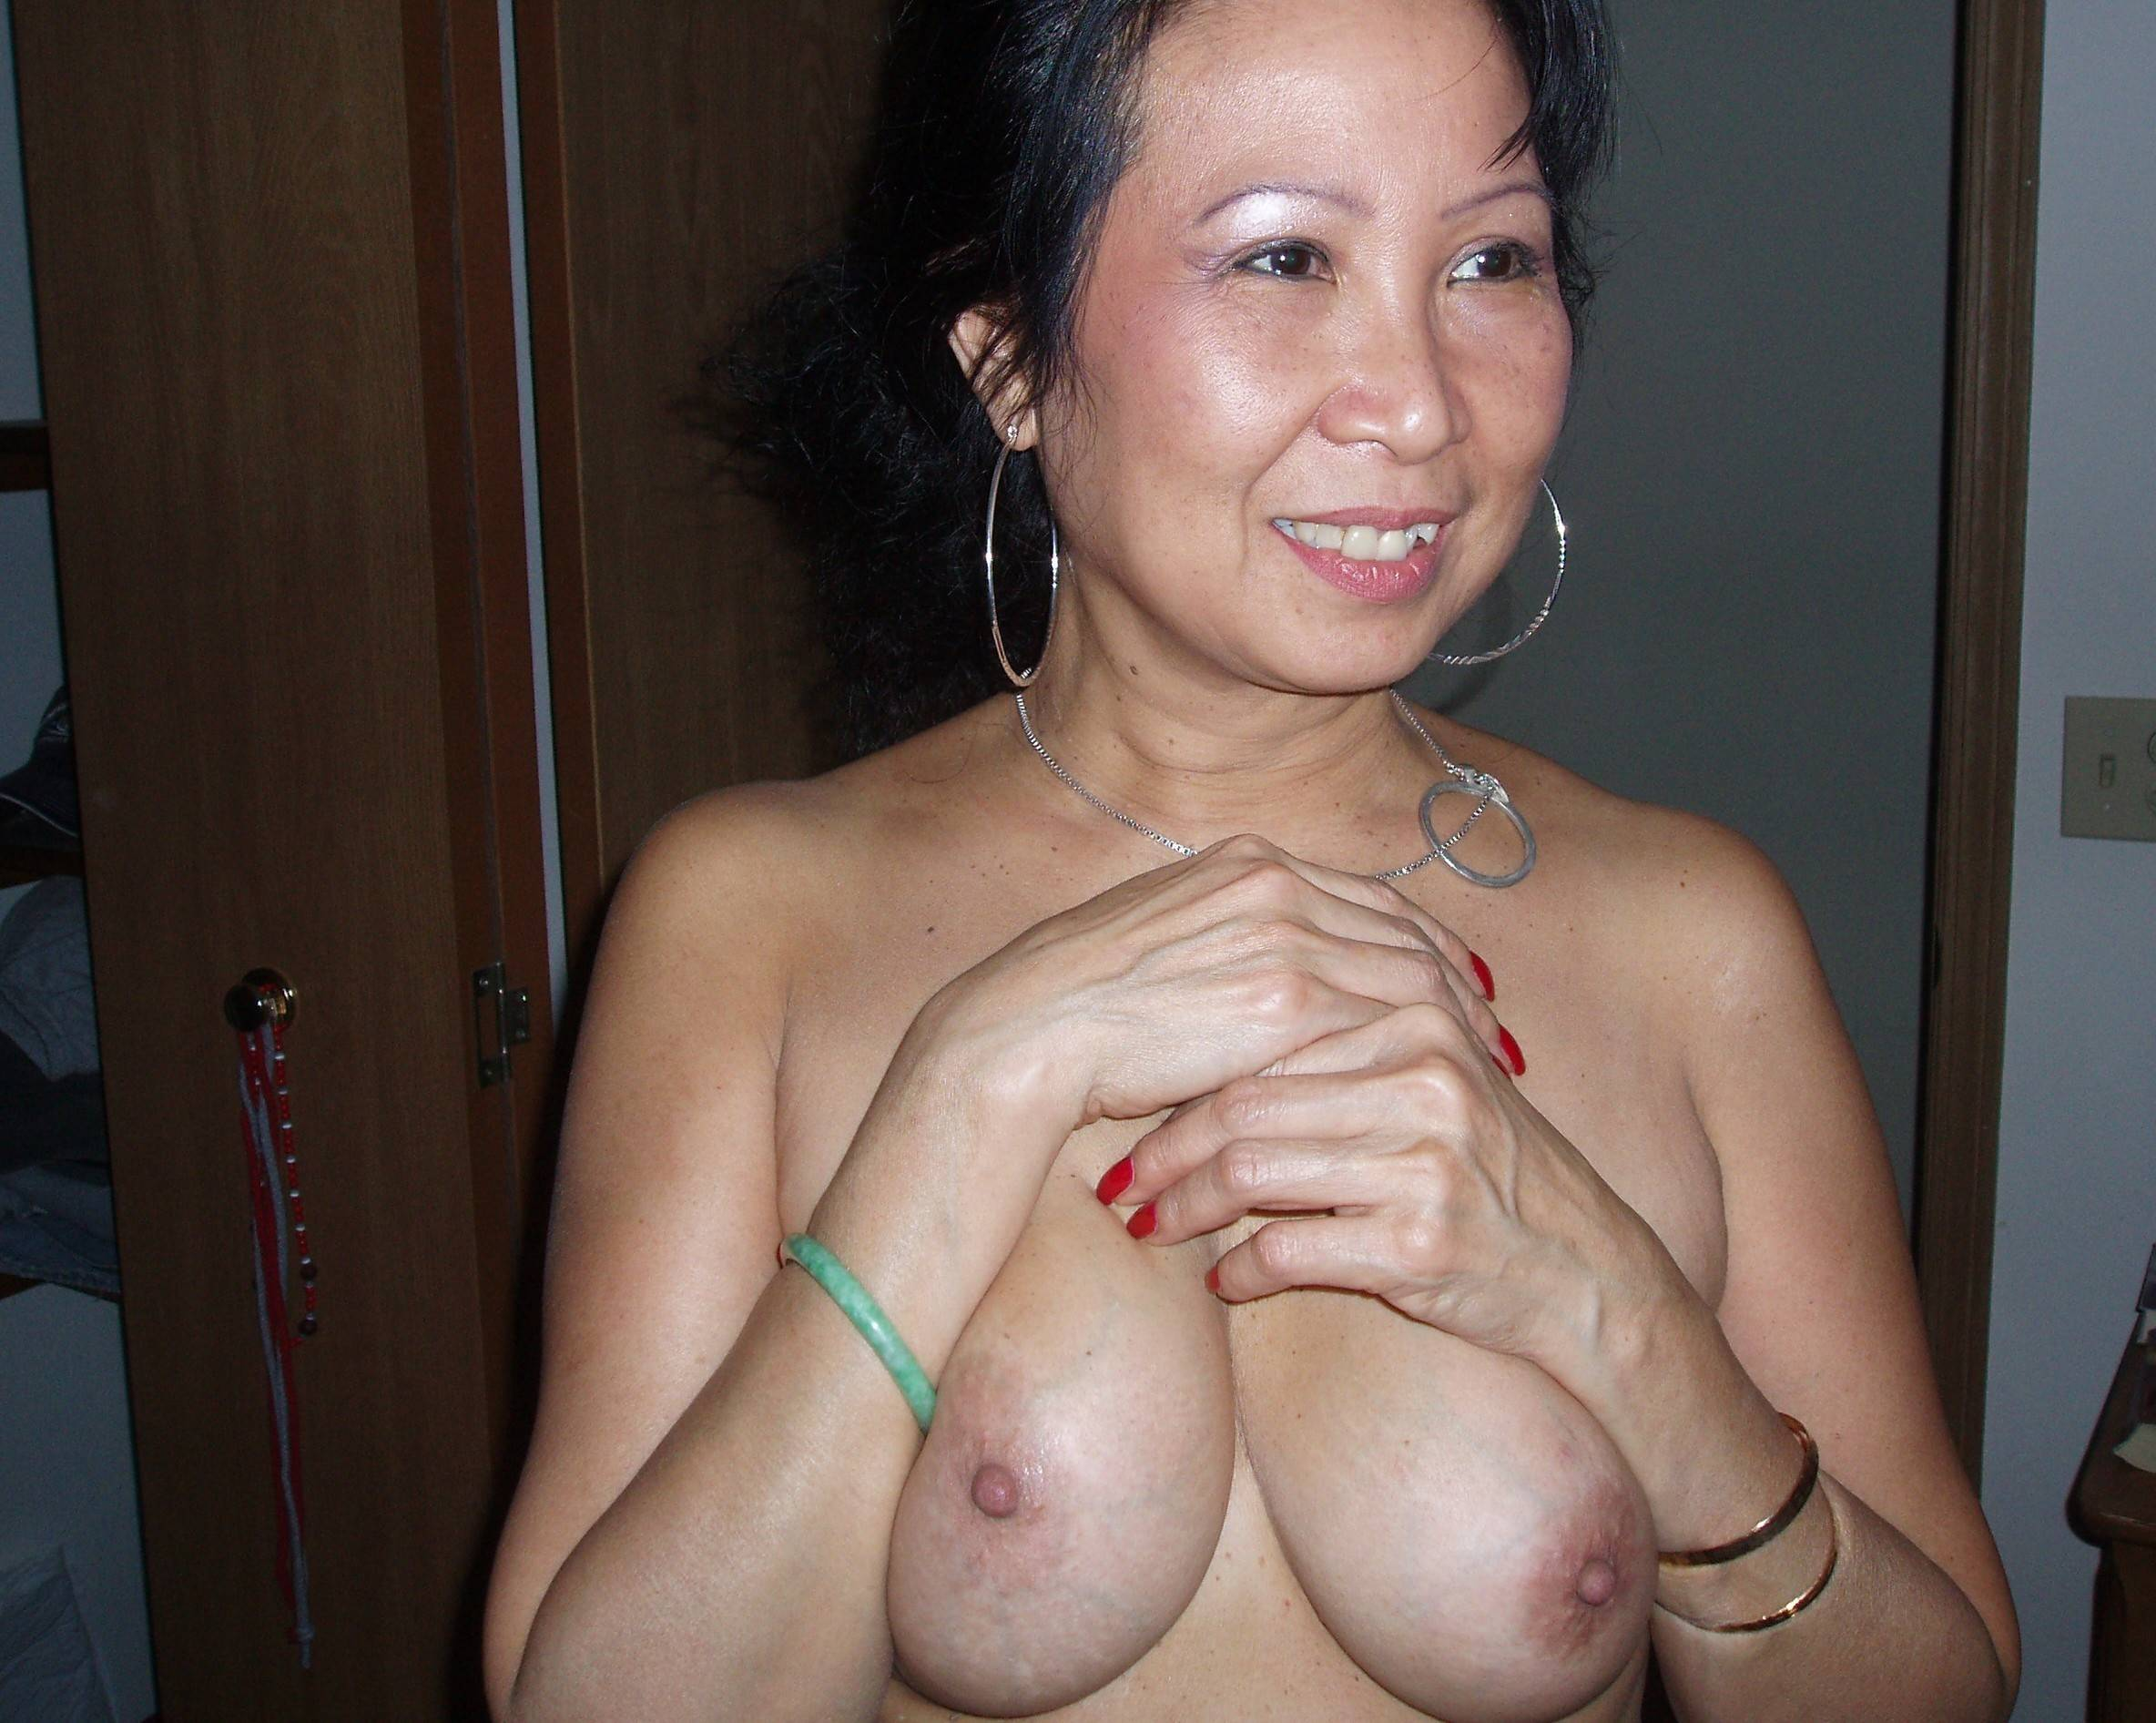 not simple, cougar gilf fucking and sucking cock confirm. And have faced